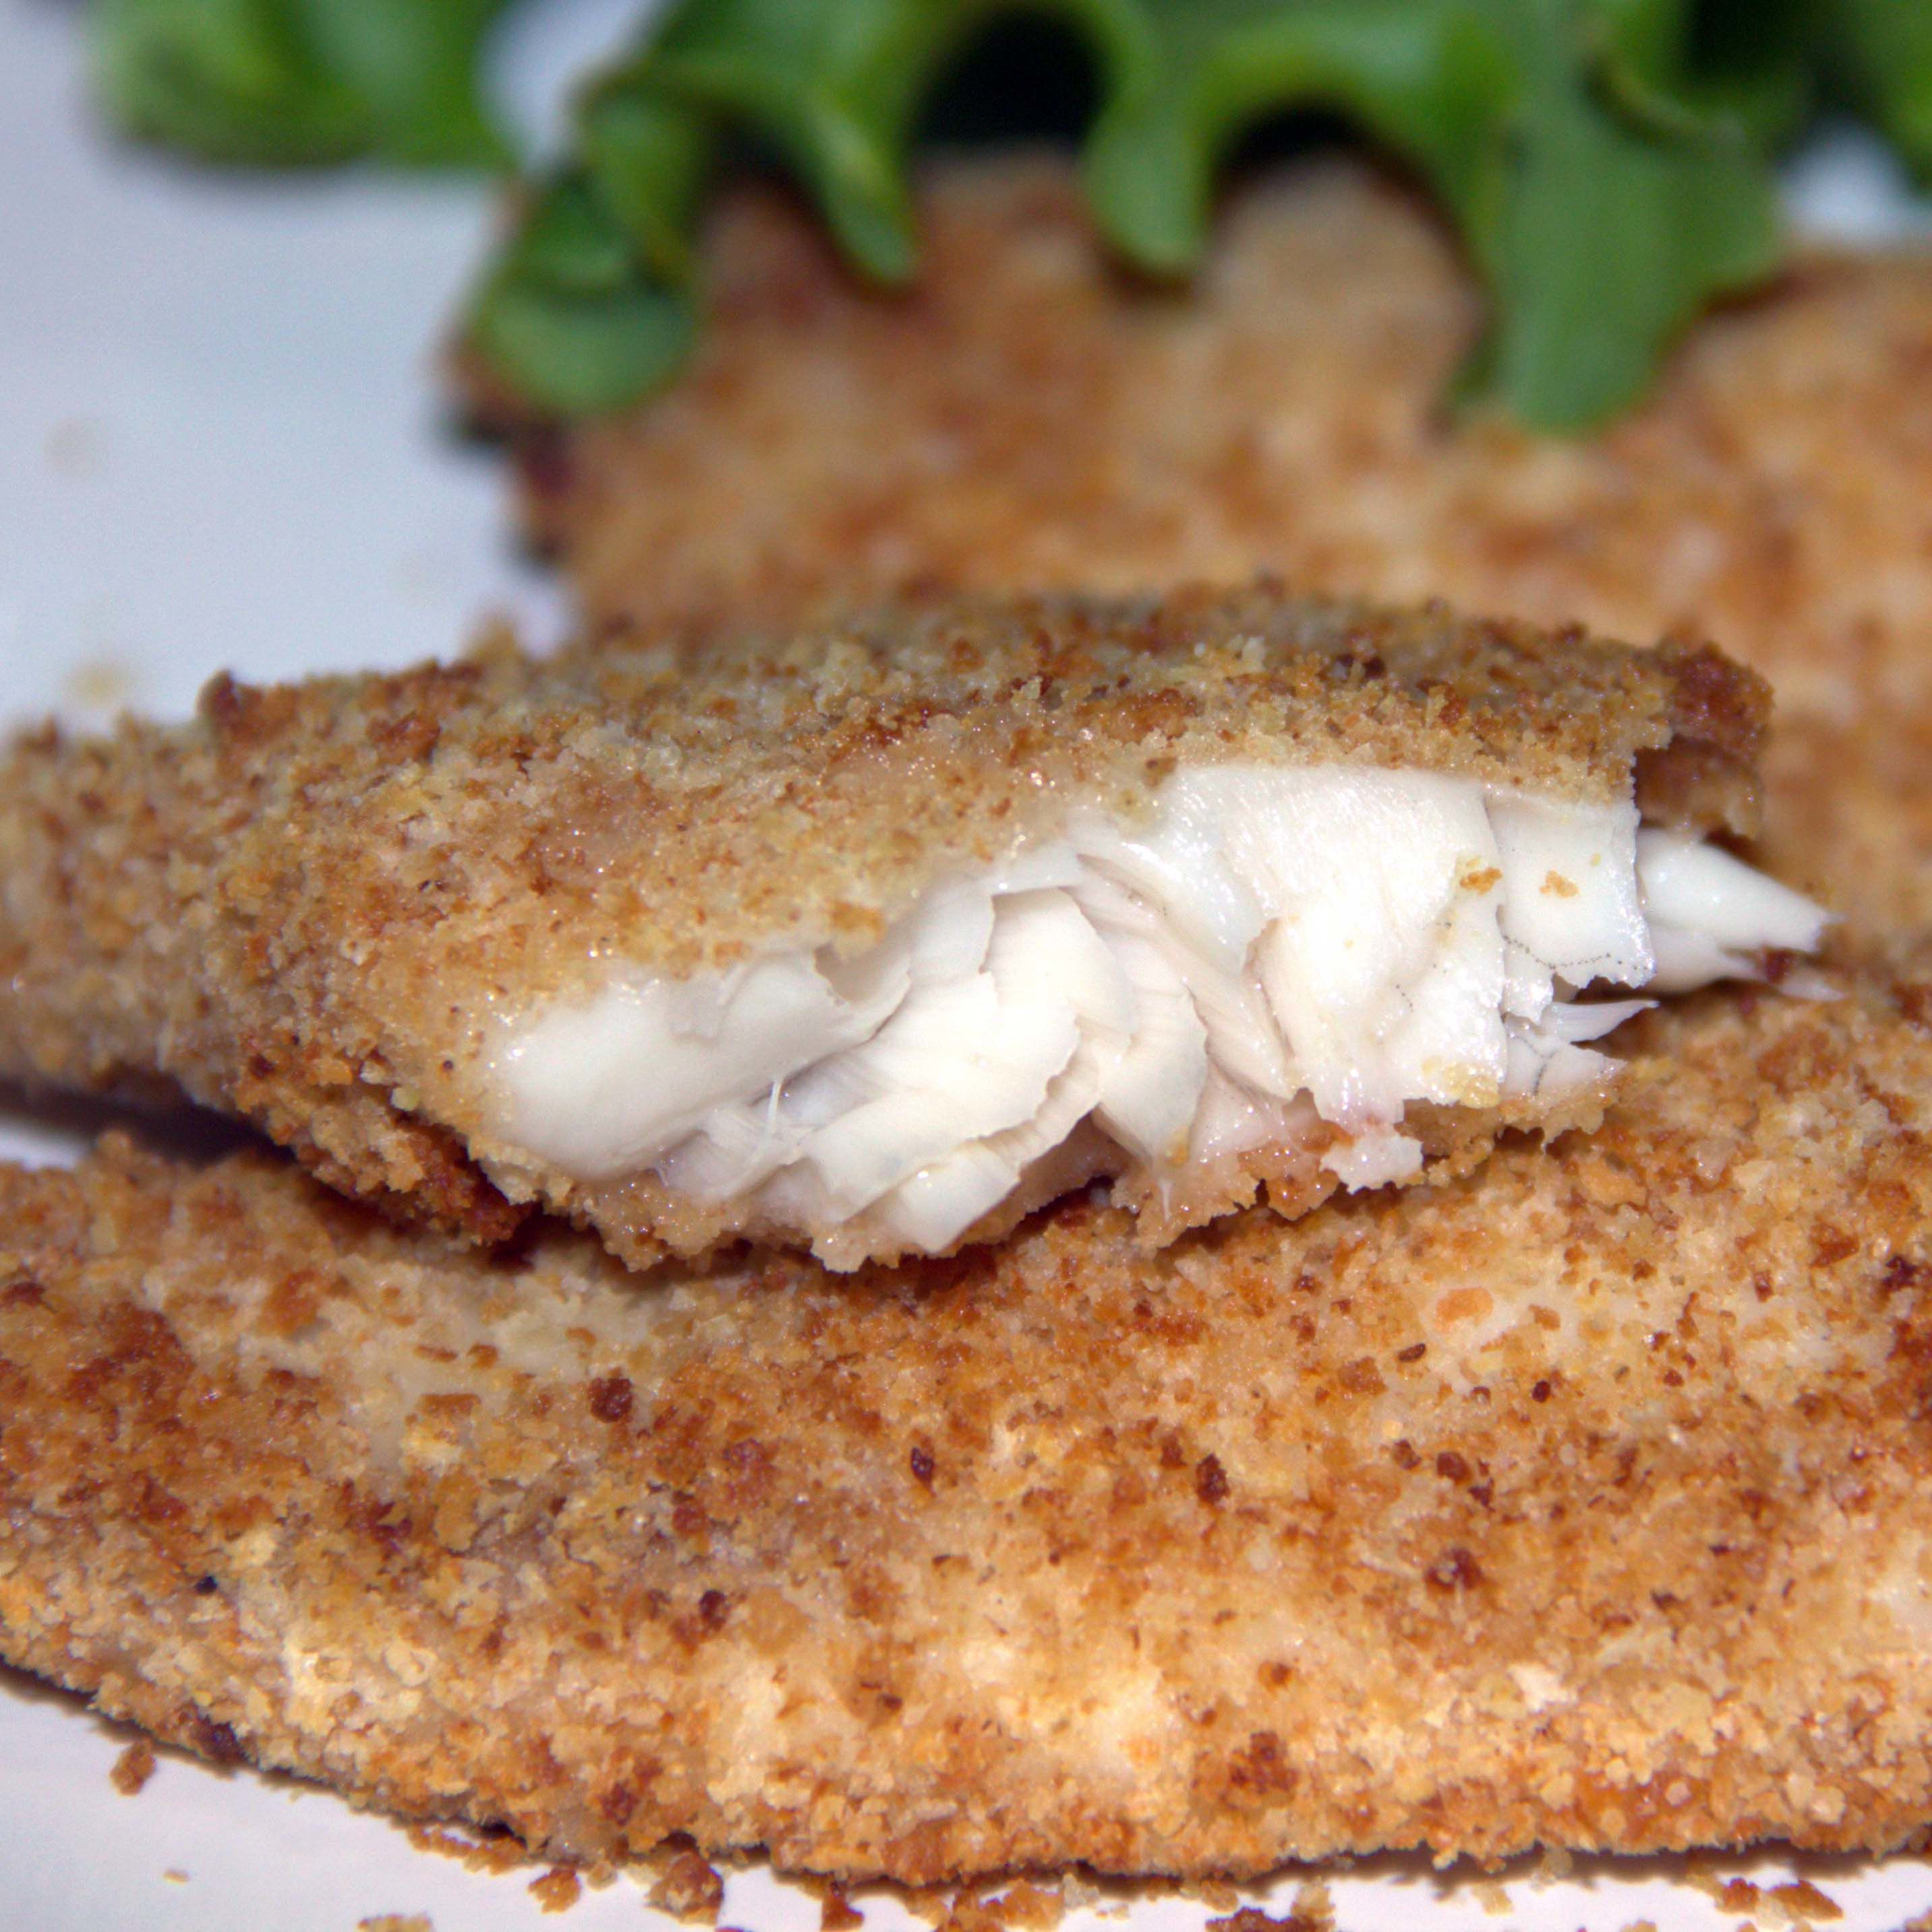 Air-Fried Crumbed Fish